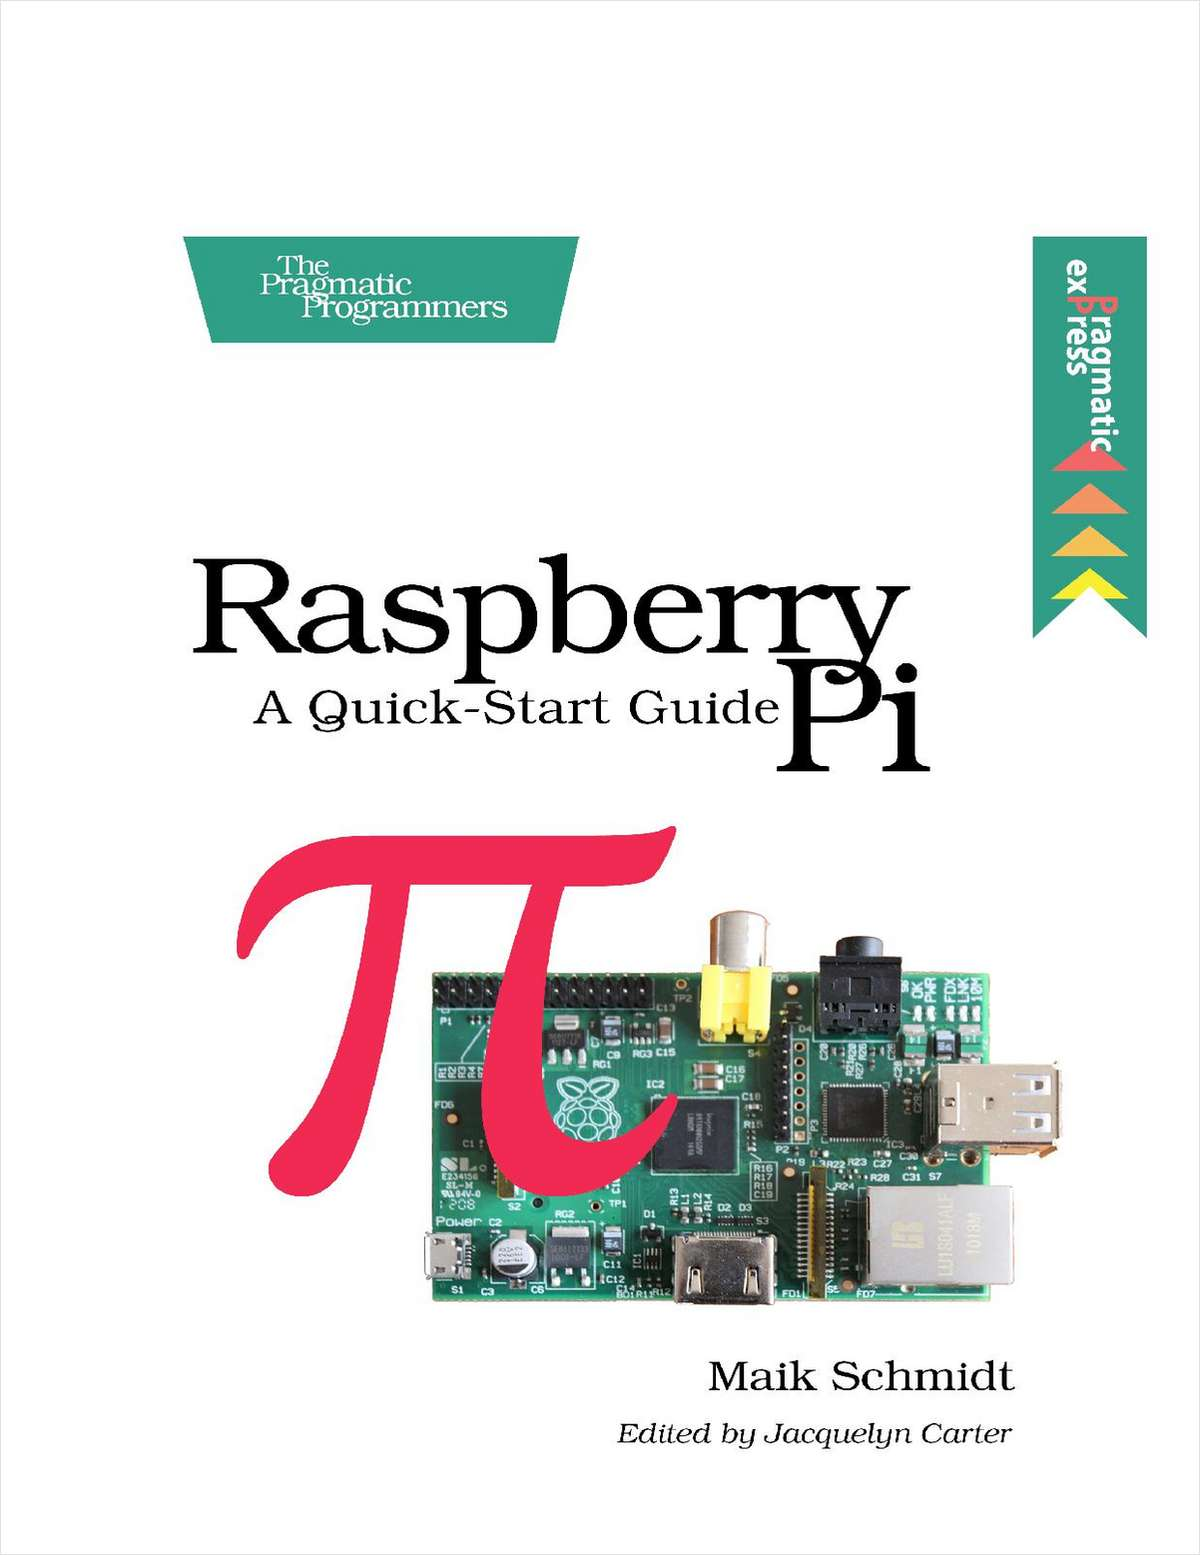 Raspberry Pi: A Quick-Start Guide (Book Excerpt) Screenshot